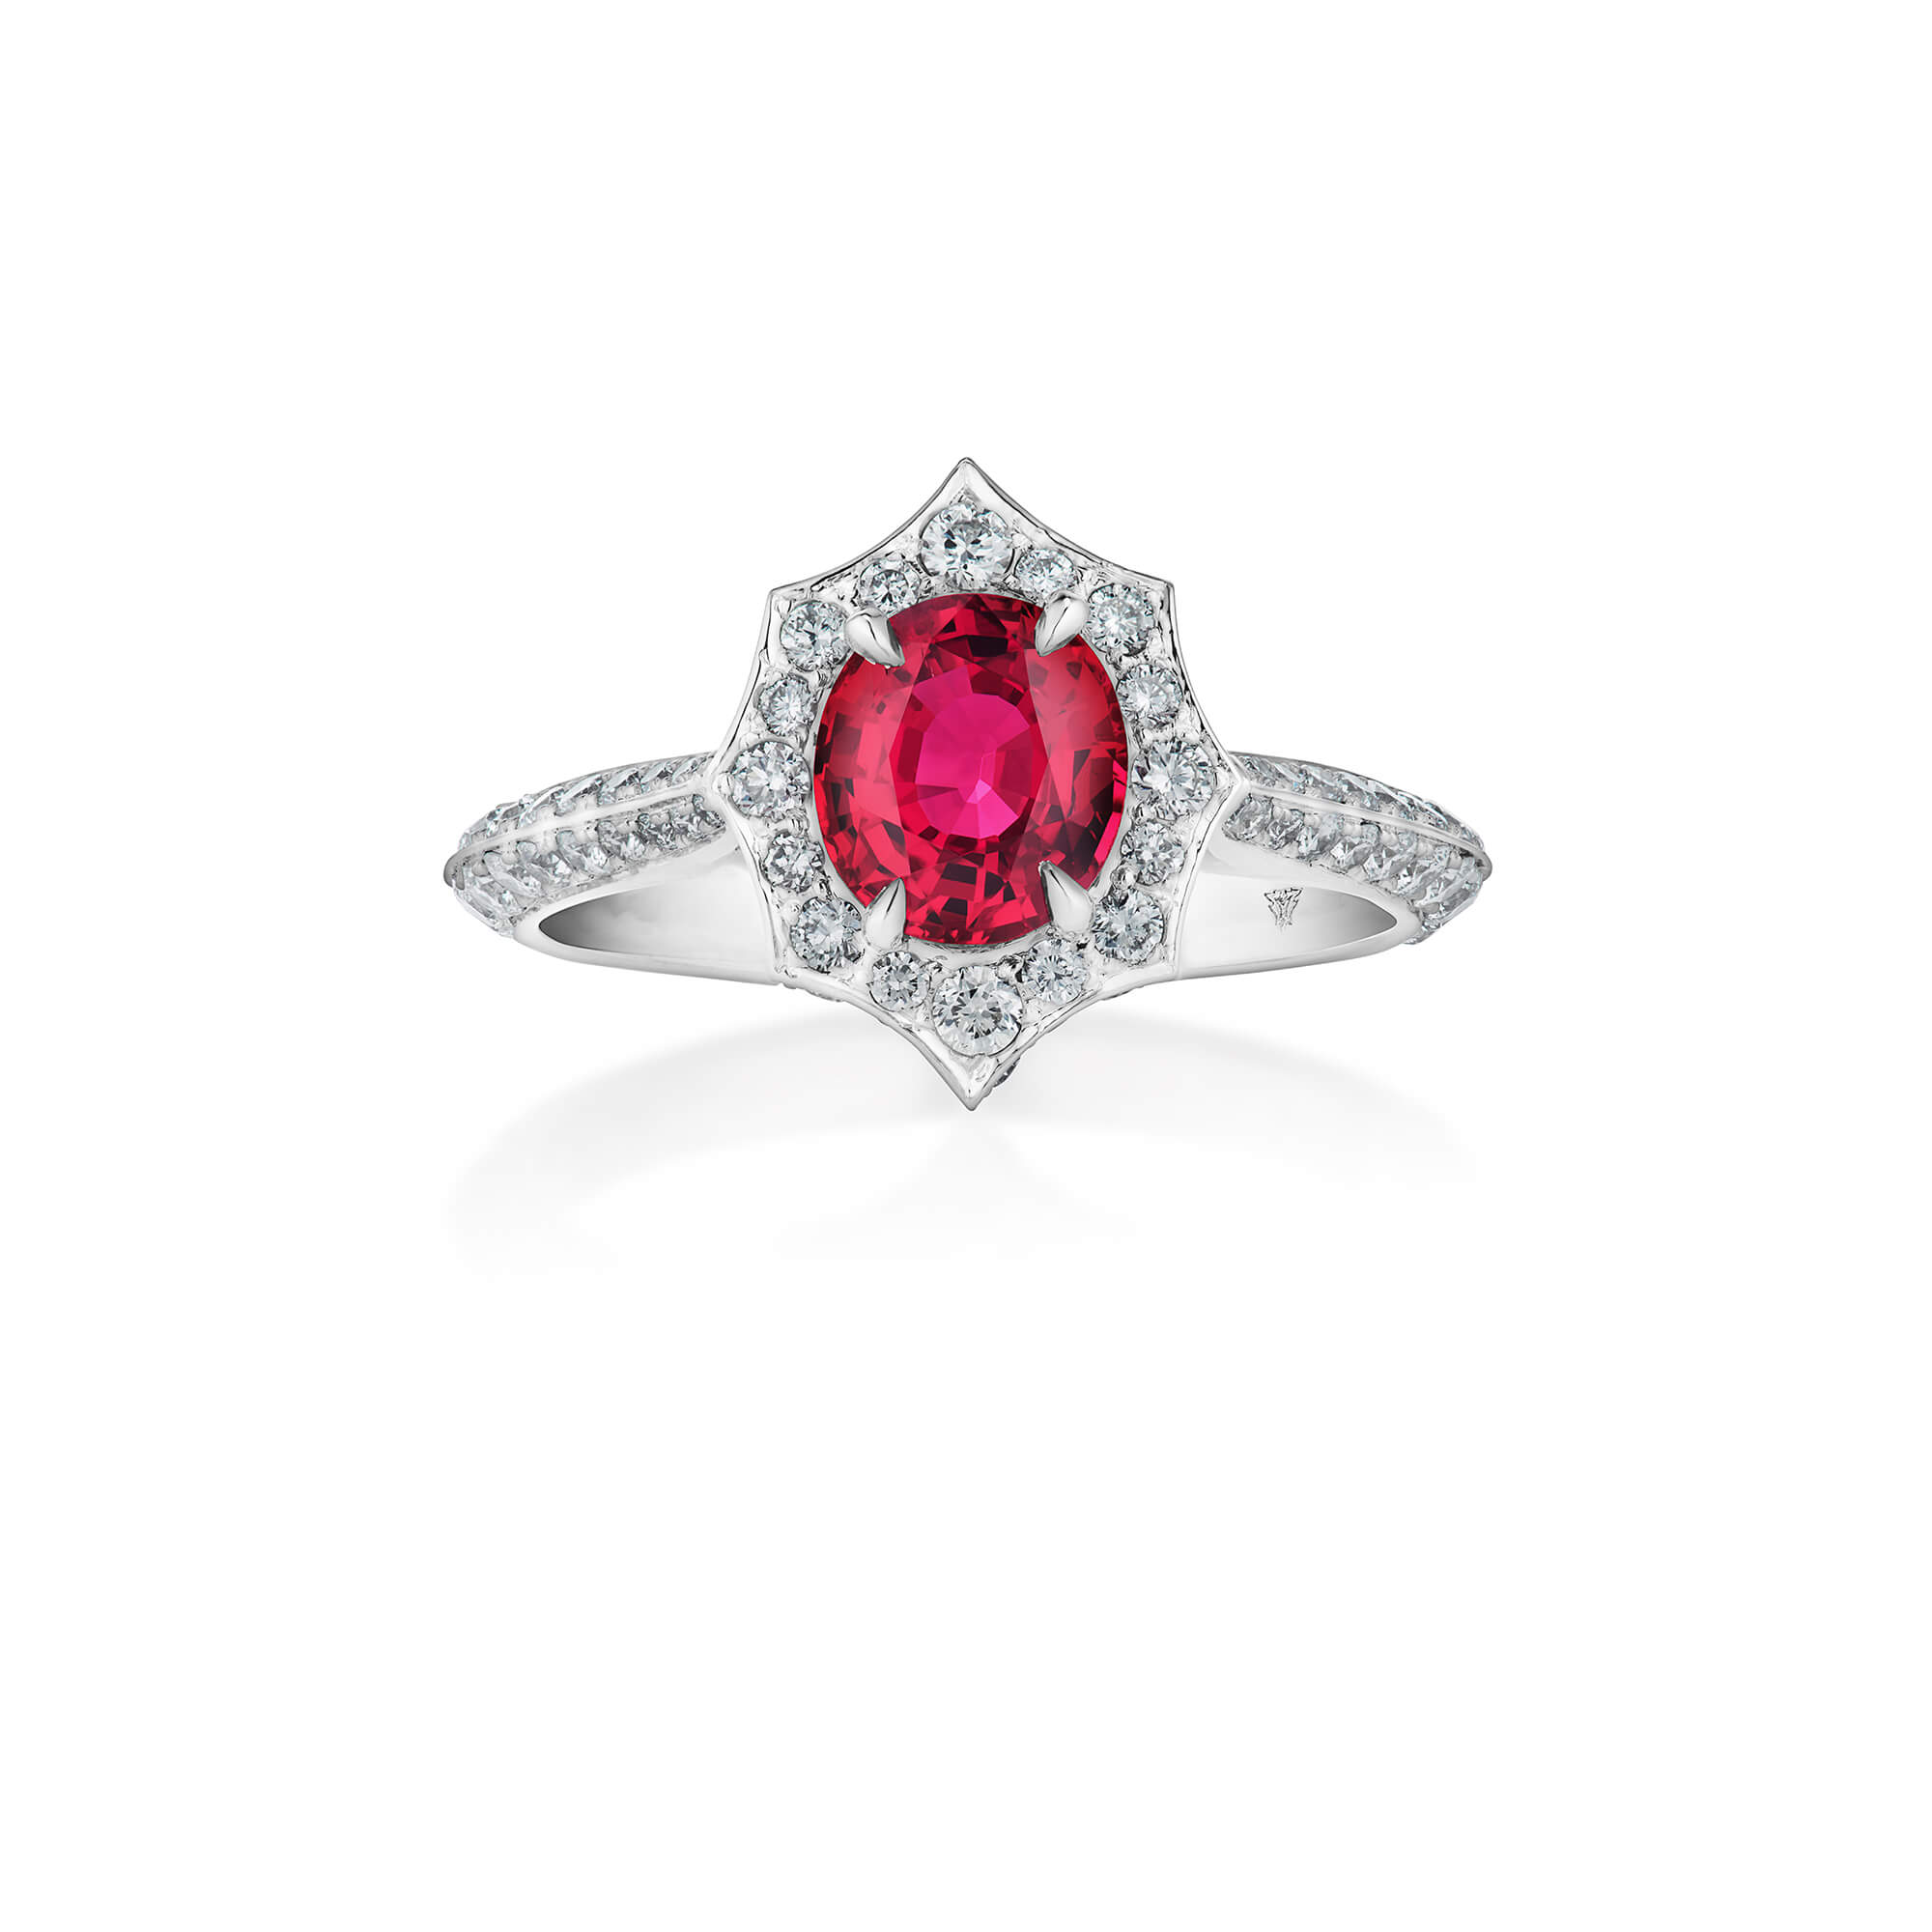 Thorn Classic Oval Halo Red Spinel Ring | No Regrets Chapel